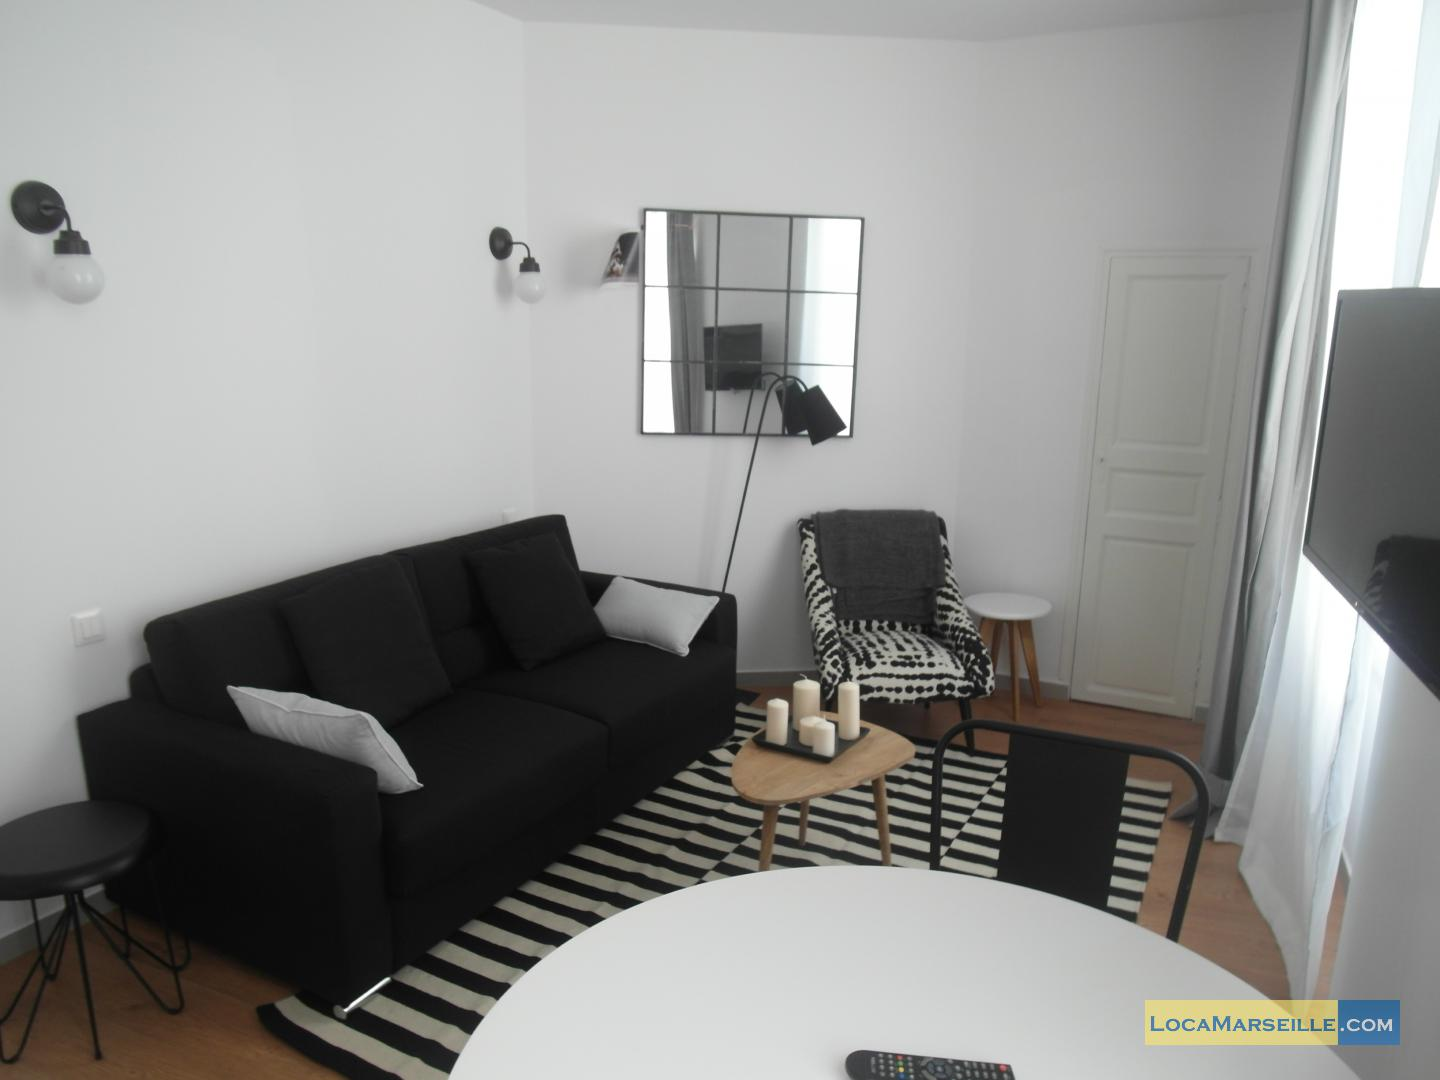 Location studio meubl marseille castellane - Location studio meuble marseille ...